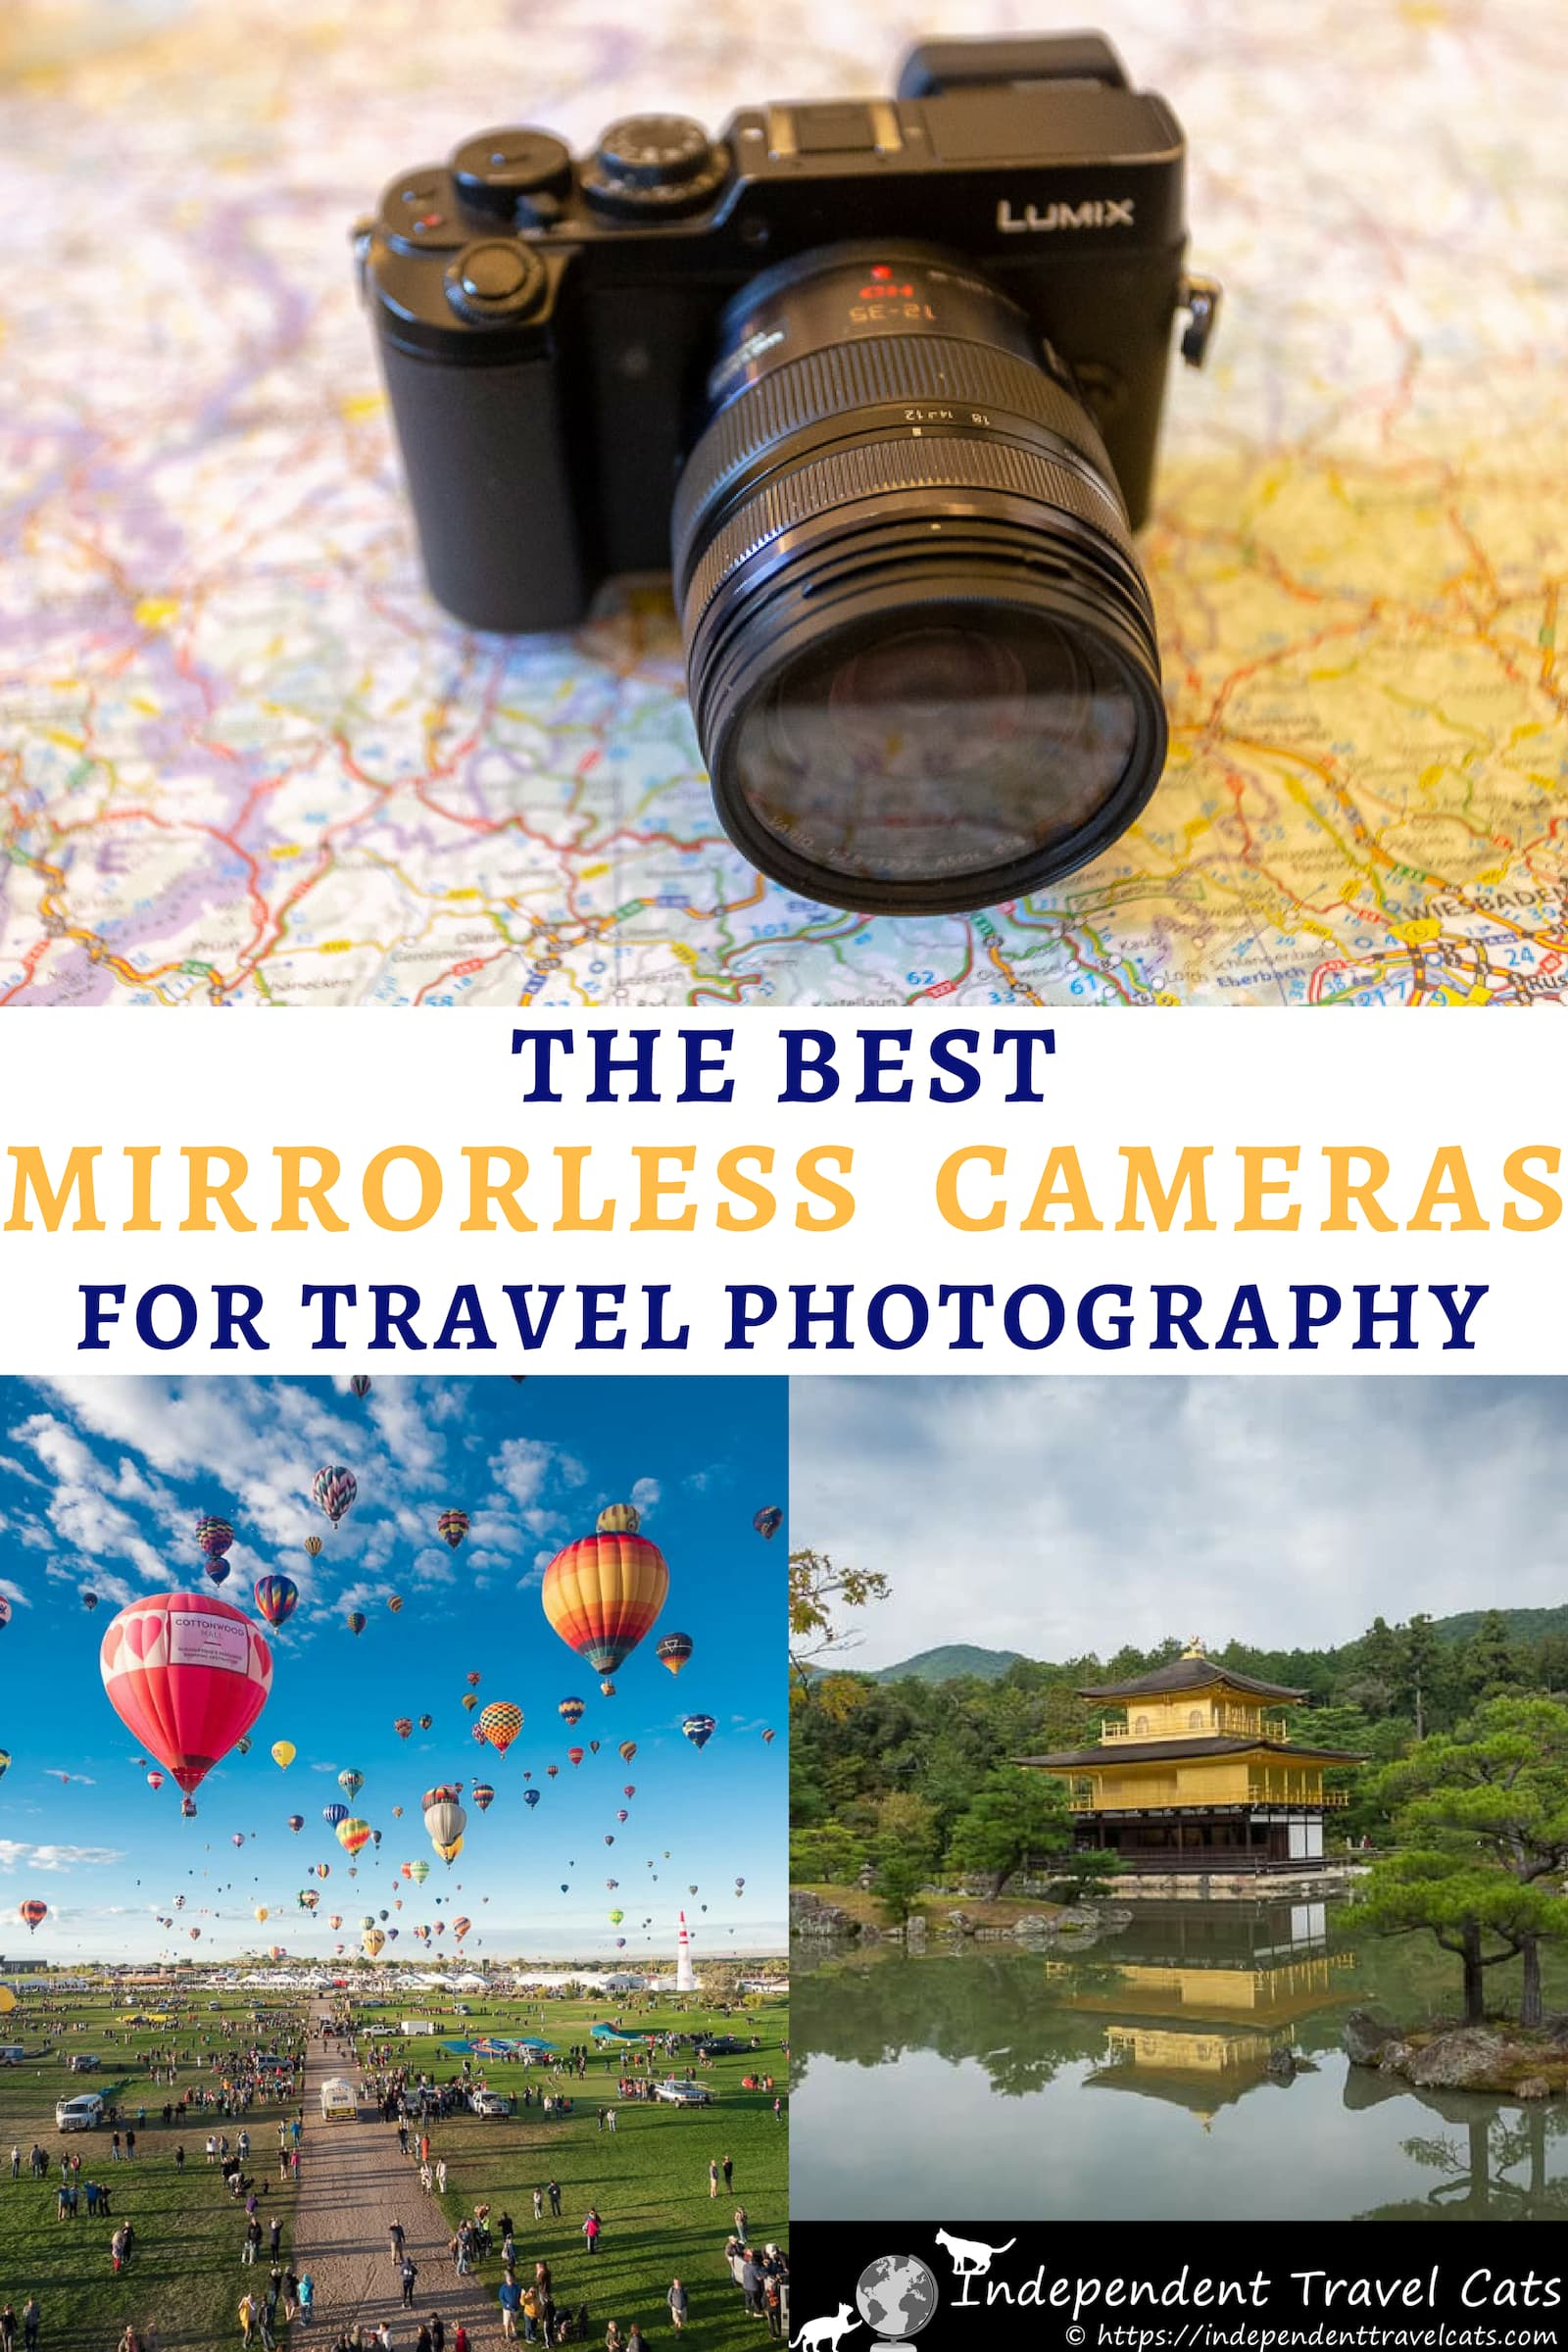 A guide to the best mirrorless cameras for travel at every price point. We'll help you decide if a mirrorless camera is a good choice for you, provide advice on how to choose the best mirrorless camera, and share a list of the best mirrorless cameras currently available across various price points. We also give some tips on how to make the most of your camera.